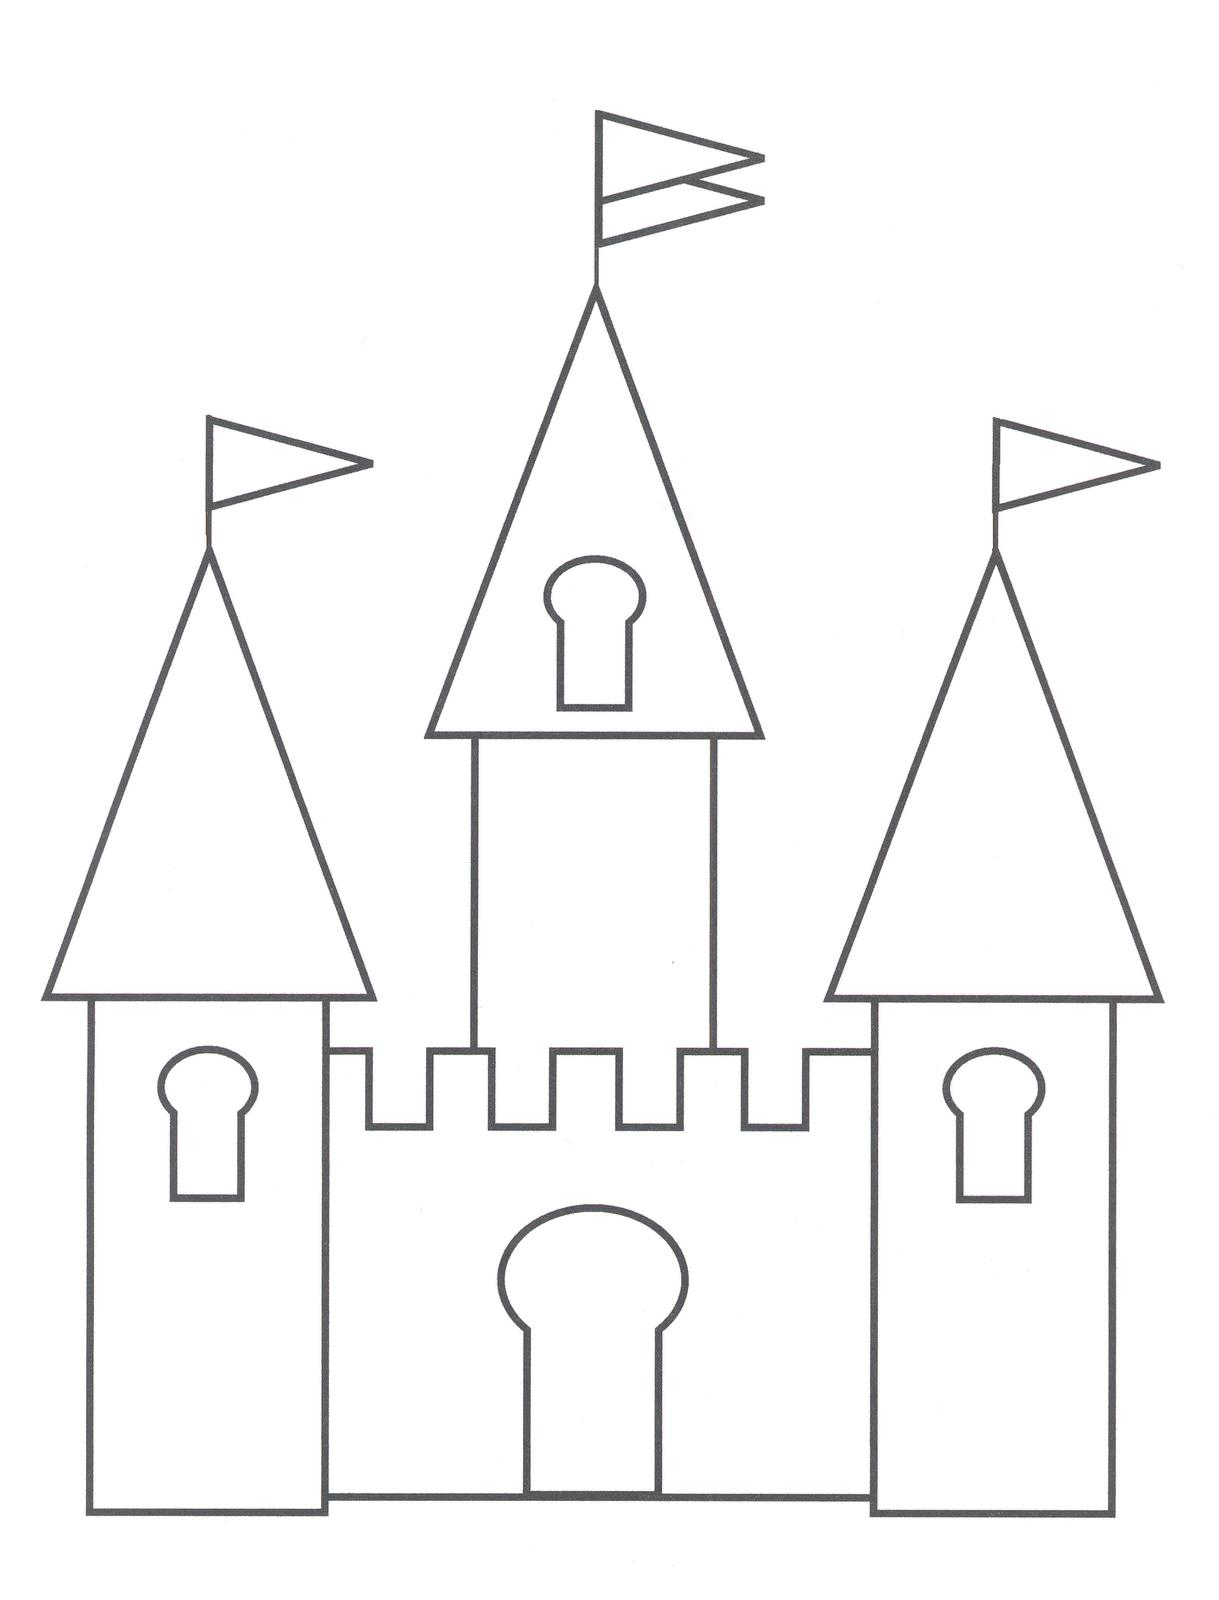 Castles-coloring-page-2